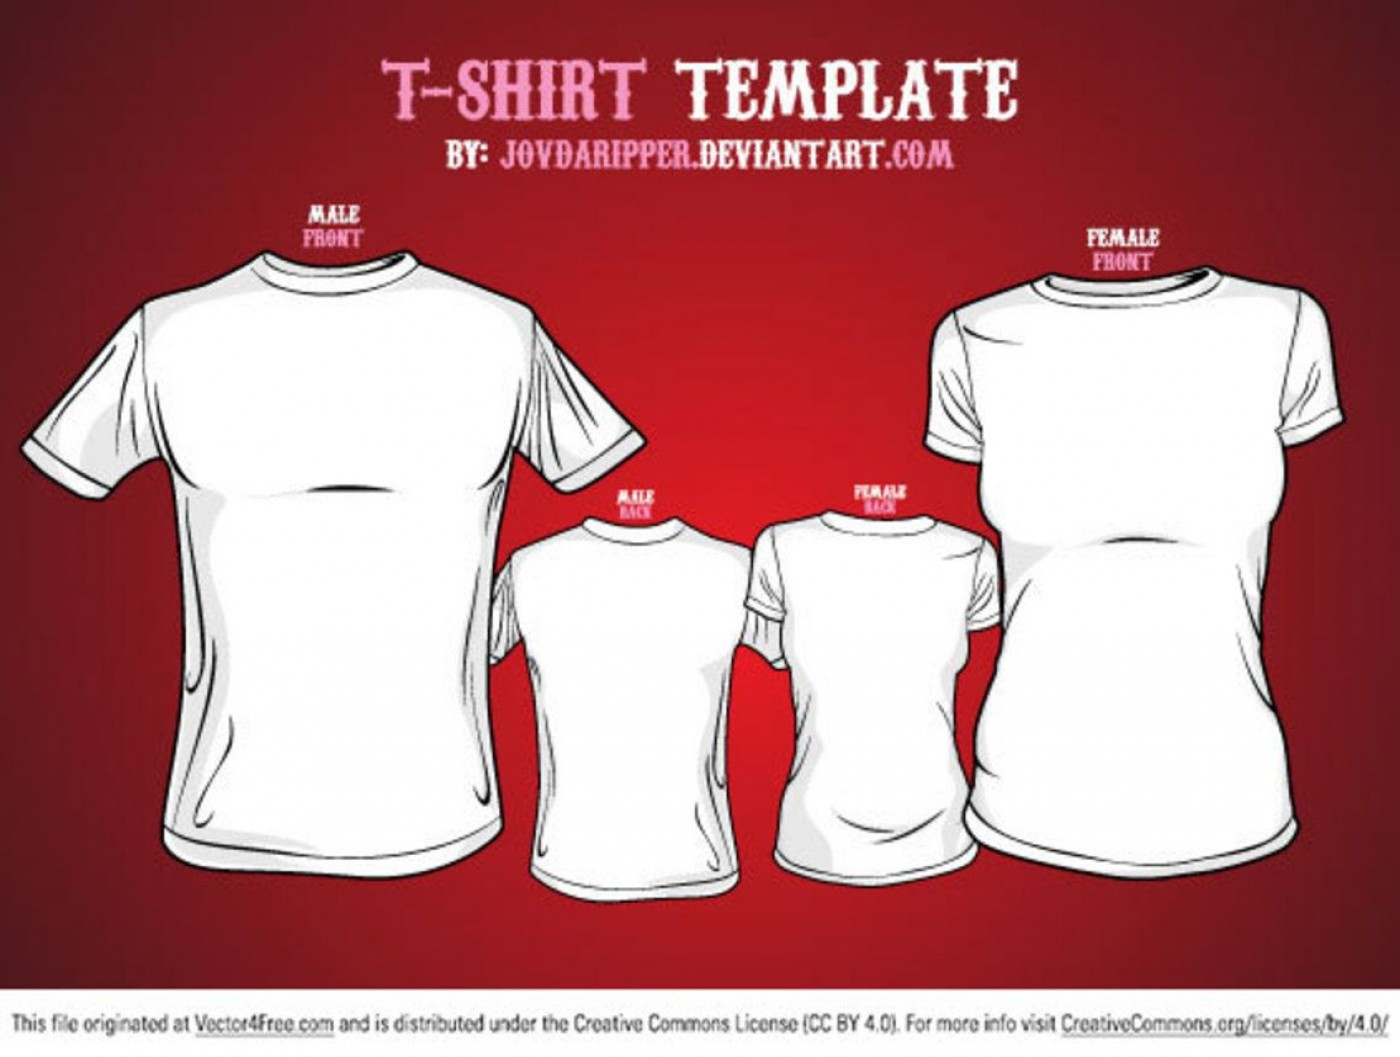 009 Top T Shirt Template Free Image  Design Psd Download Illustrator1400